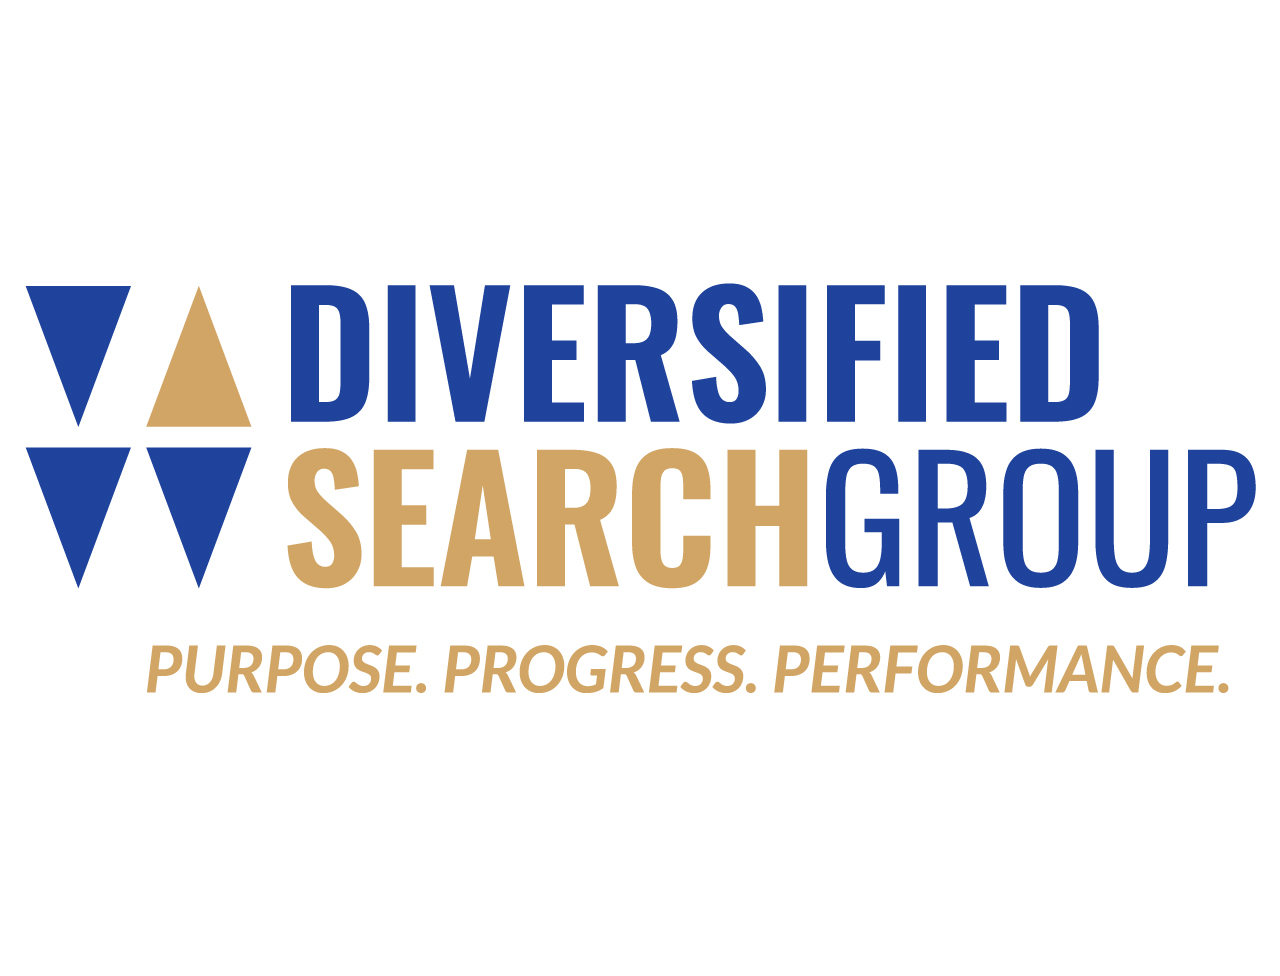 Diversified Search